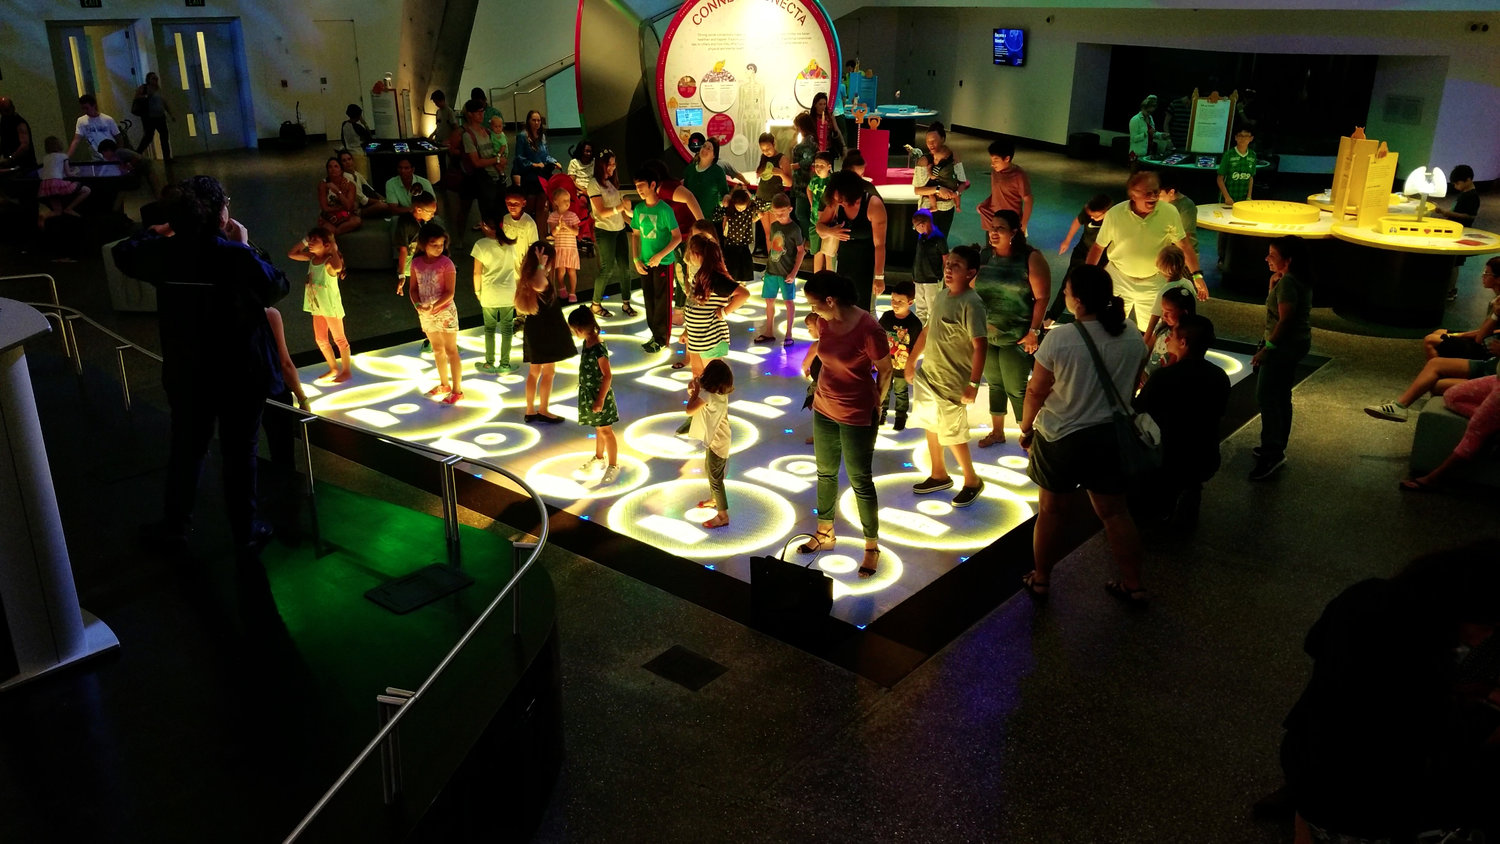 Kids and adults playing a calorie burning game on the ActiveFloor.